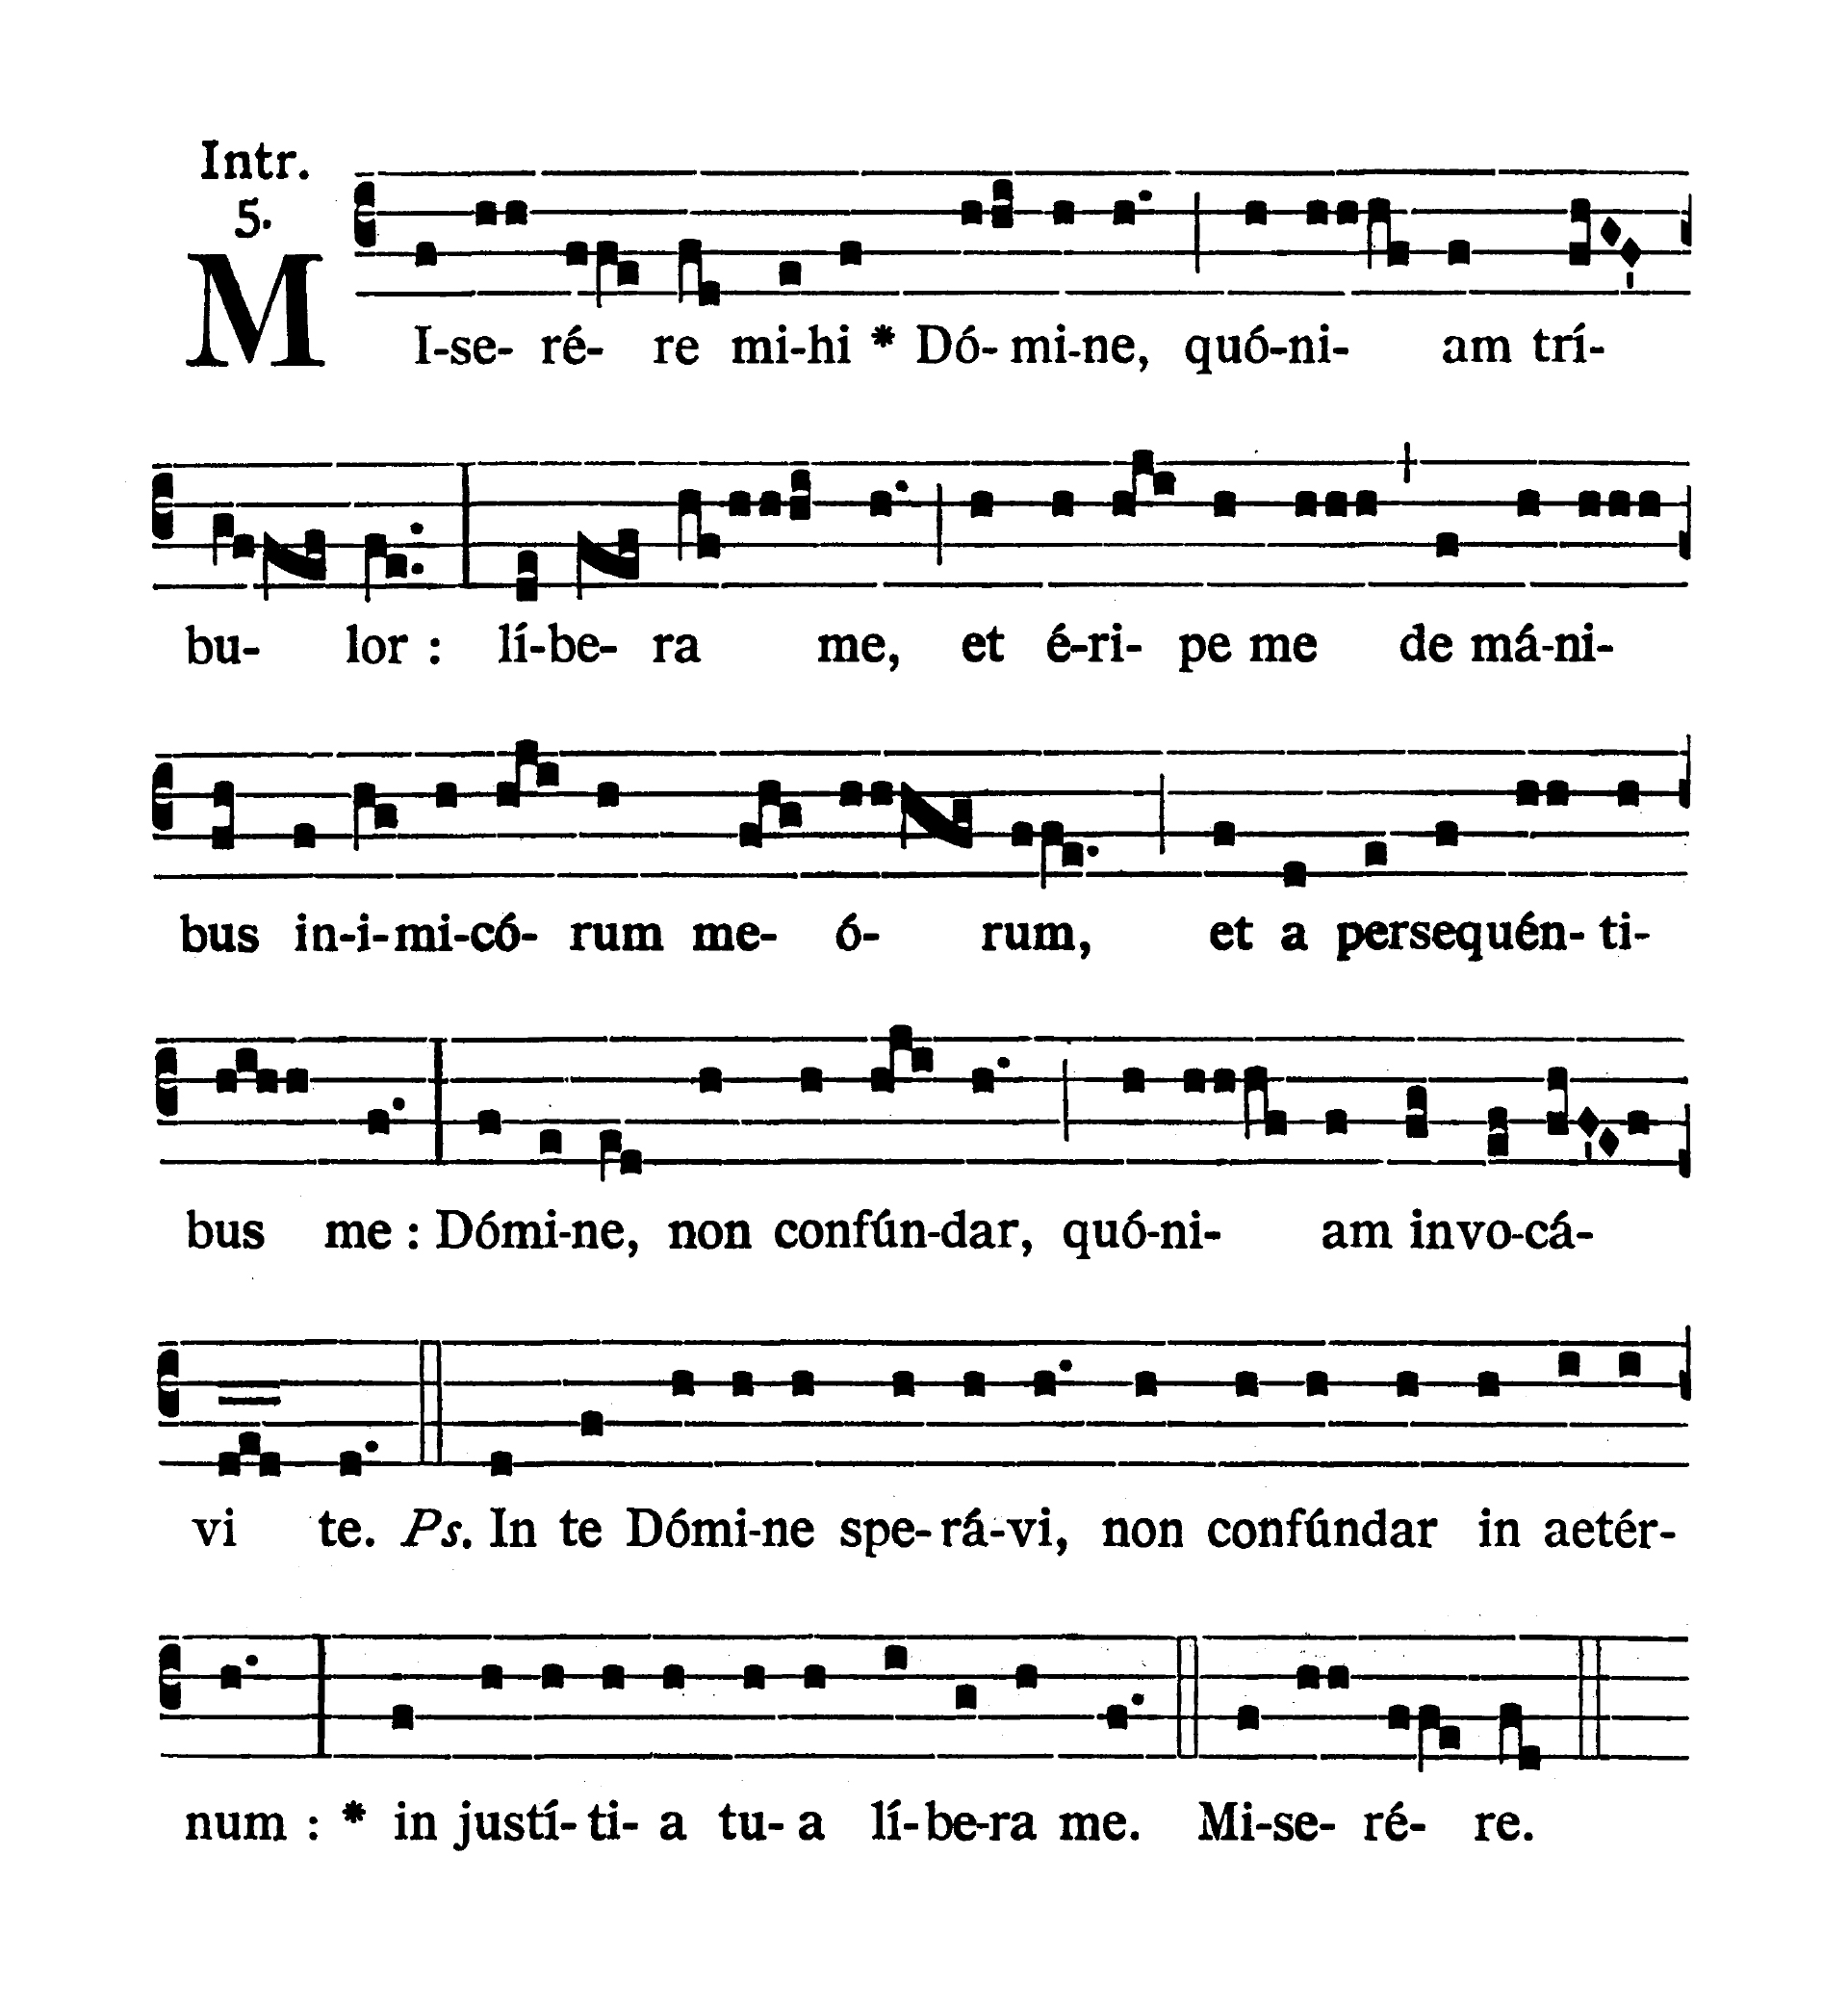 Sabbato post Dominicam I Passionis (Saturday after Passion Sunday) - Introitus (Miserere mihi)